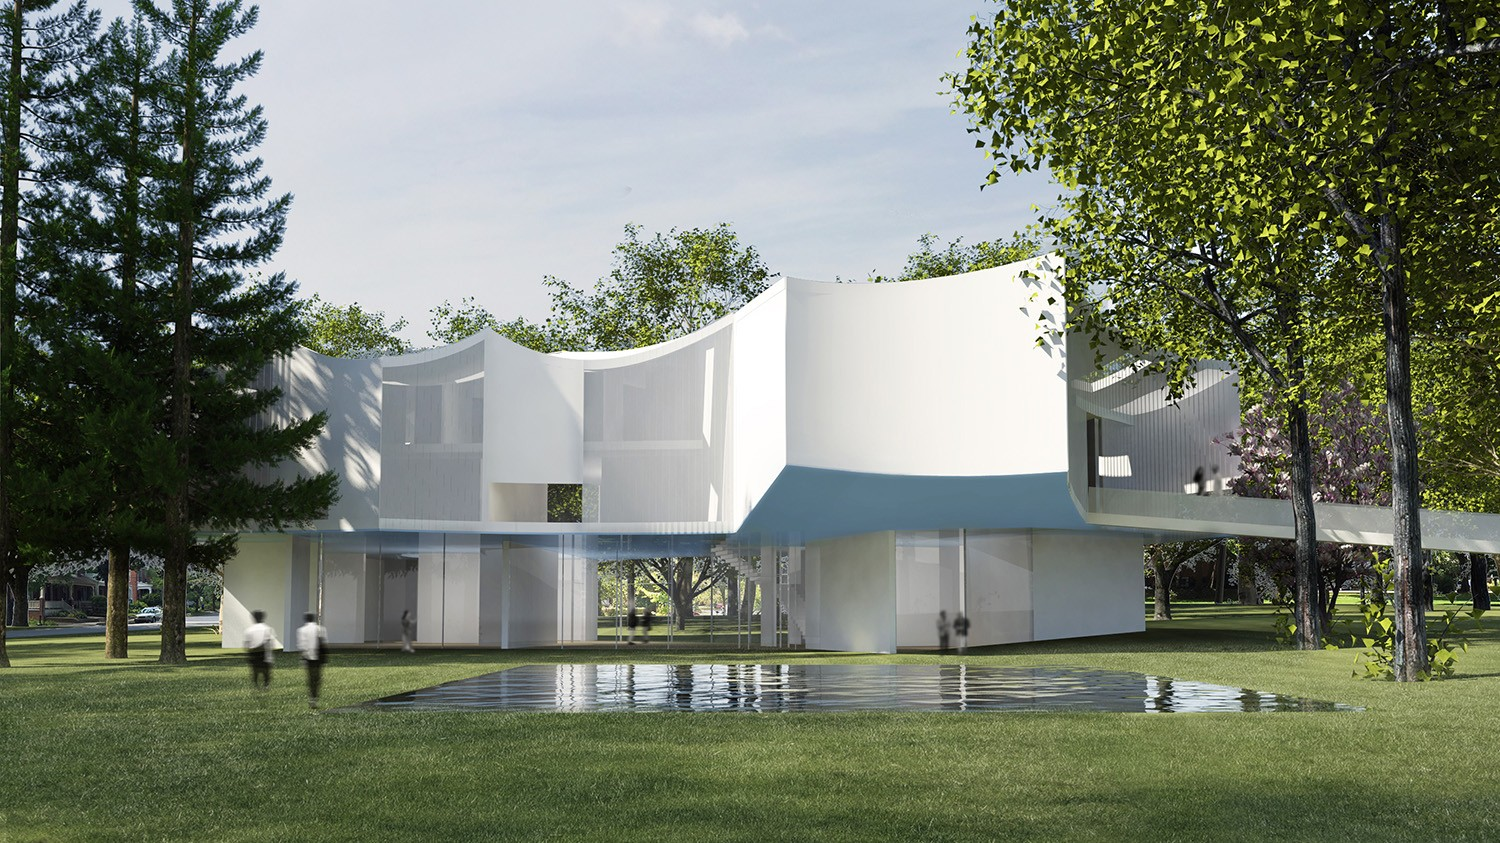 https://stevenholl.sfo2.digitaloceanspaces.com/uploads/projects/project-images/StevenHollArchitects_F&M_OverallDay_WH.jpg